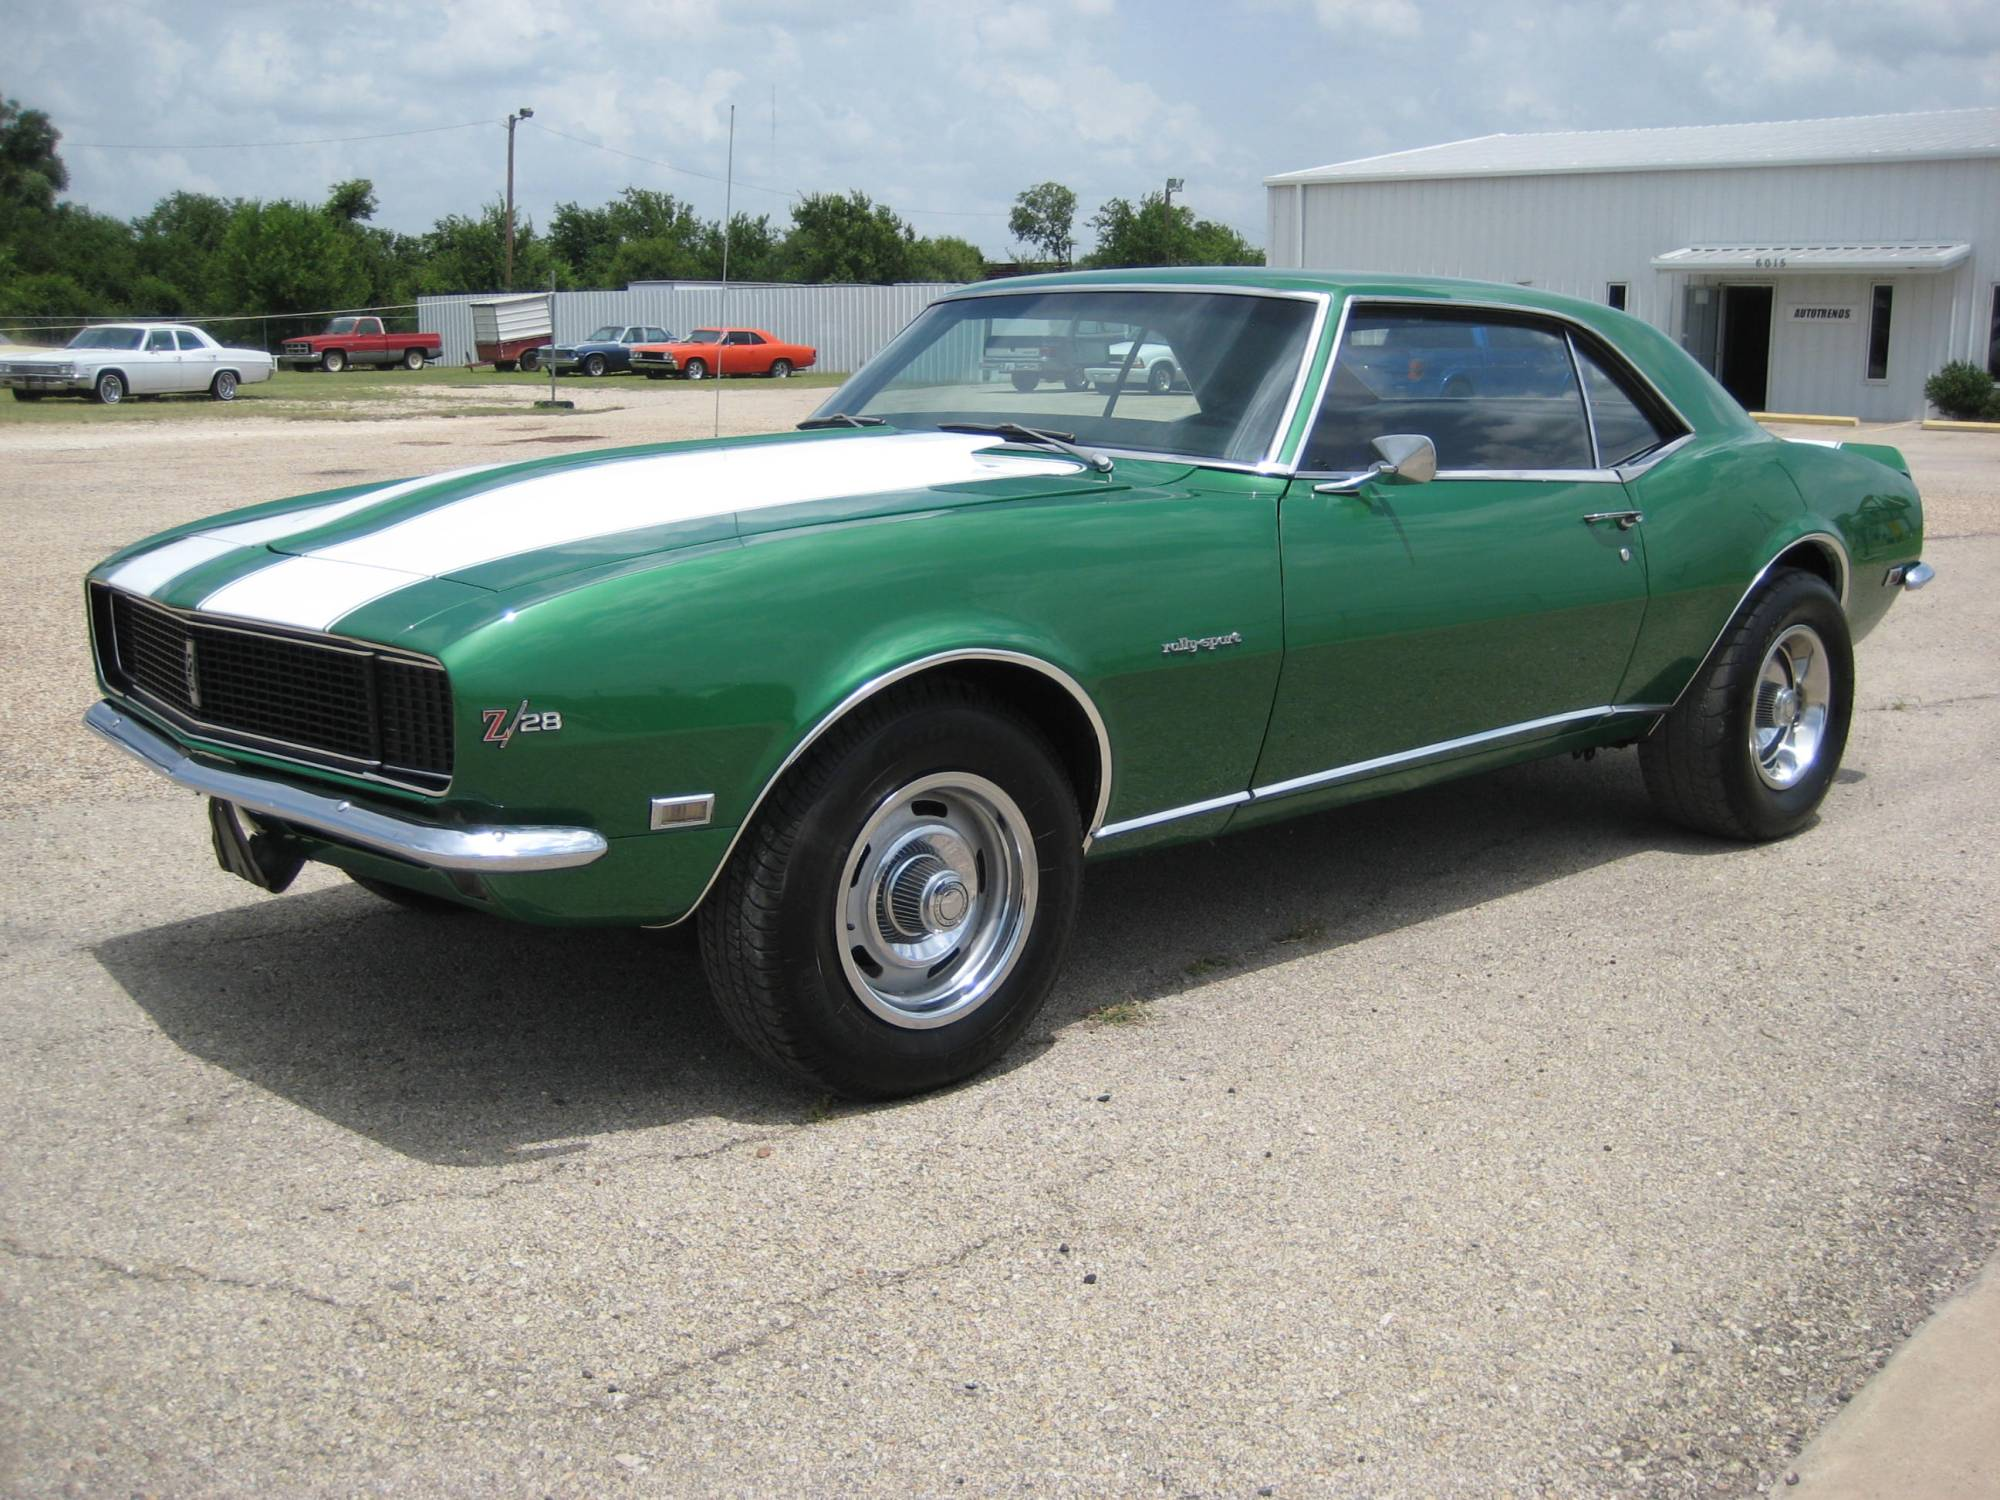 hight resolution of 1968 camaro rally sport with hide a way headlights 350 v8 4 speed muncie 12 bolt rearend mild cam aluminum 4v intake headers w dual exhaust